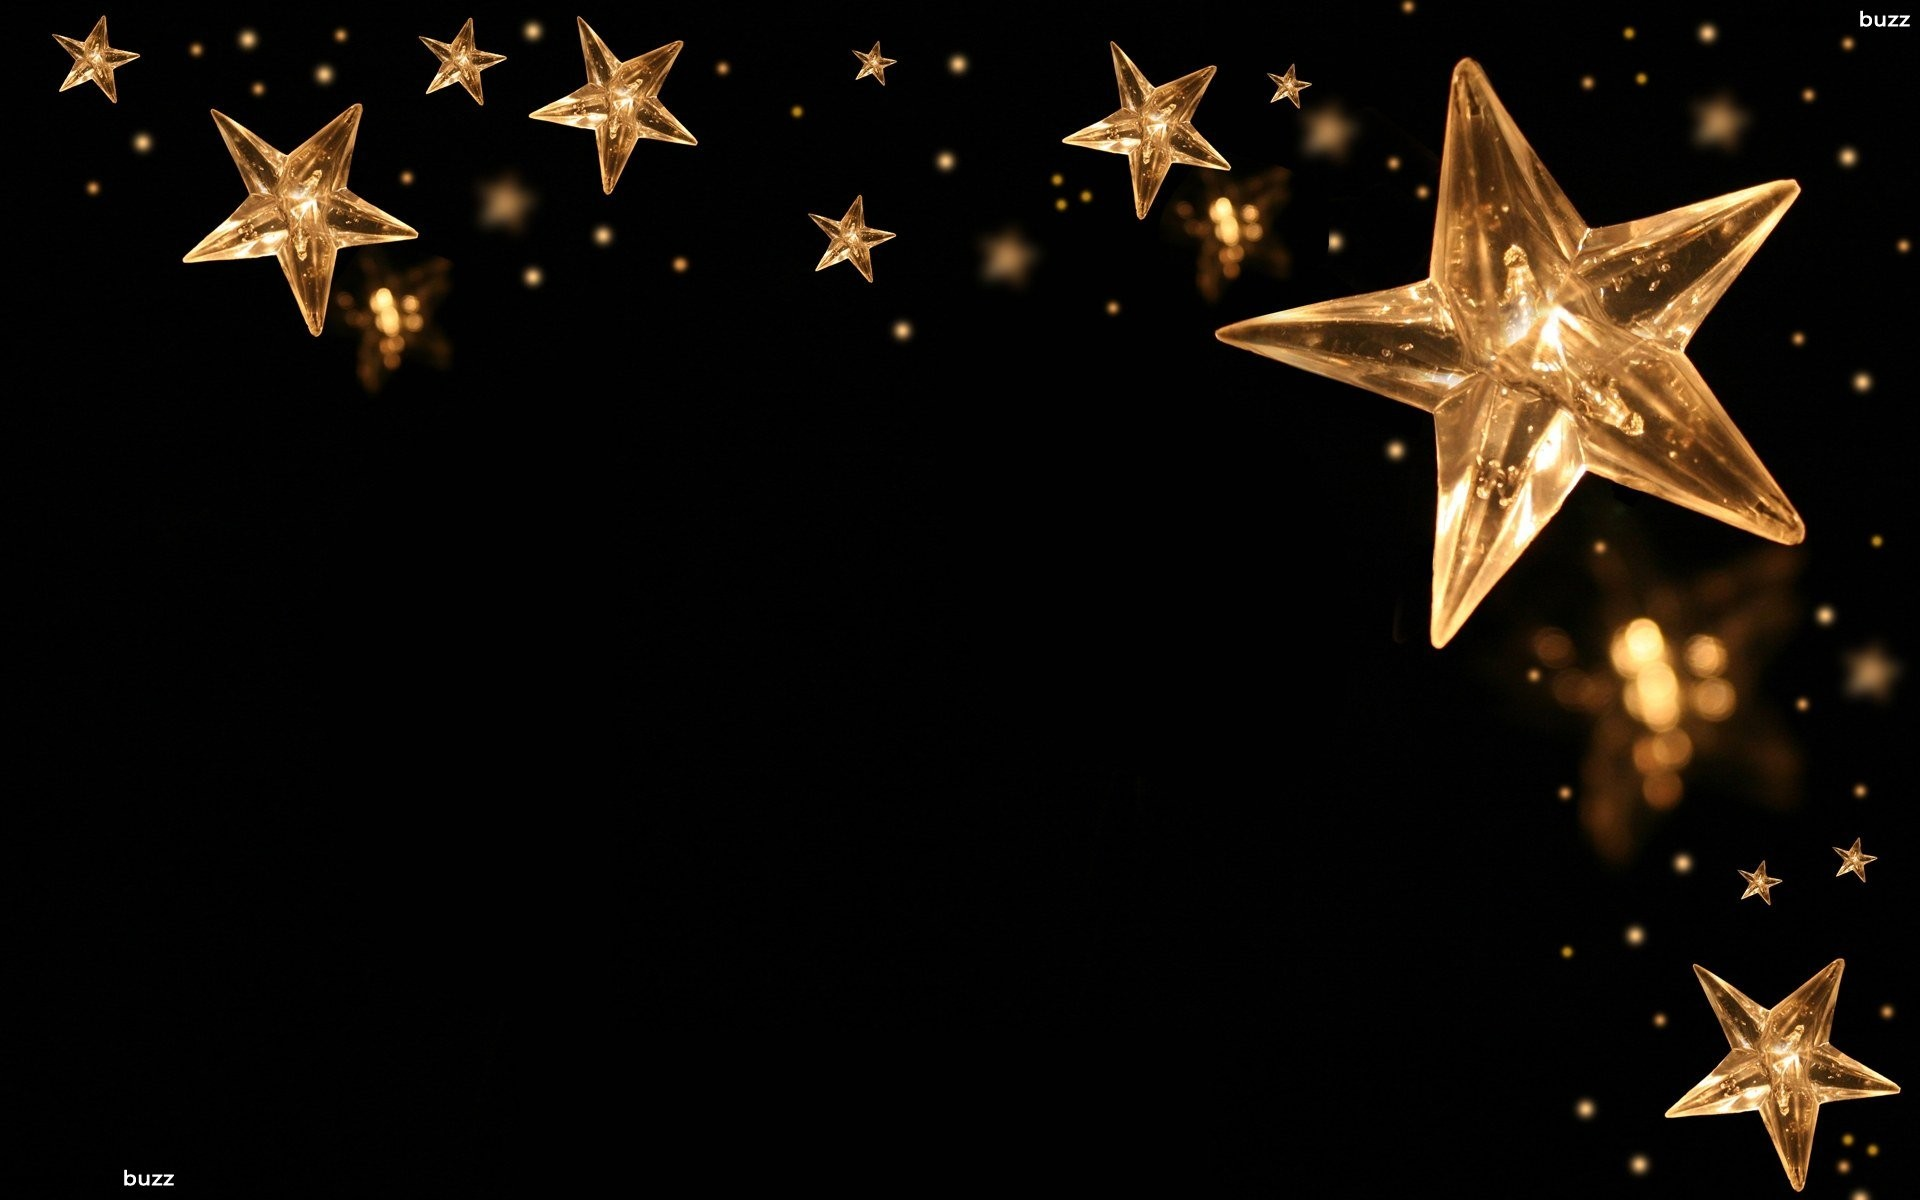 Wallpaper Of Stars 61 Images